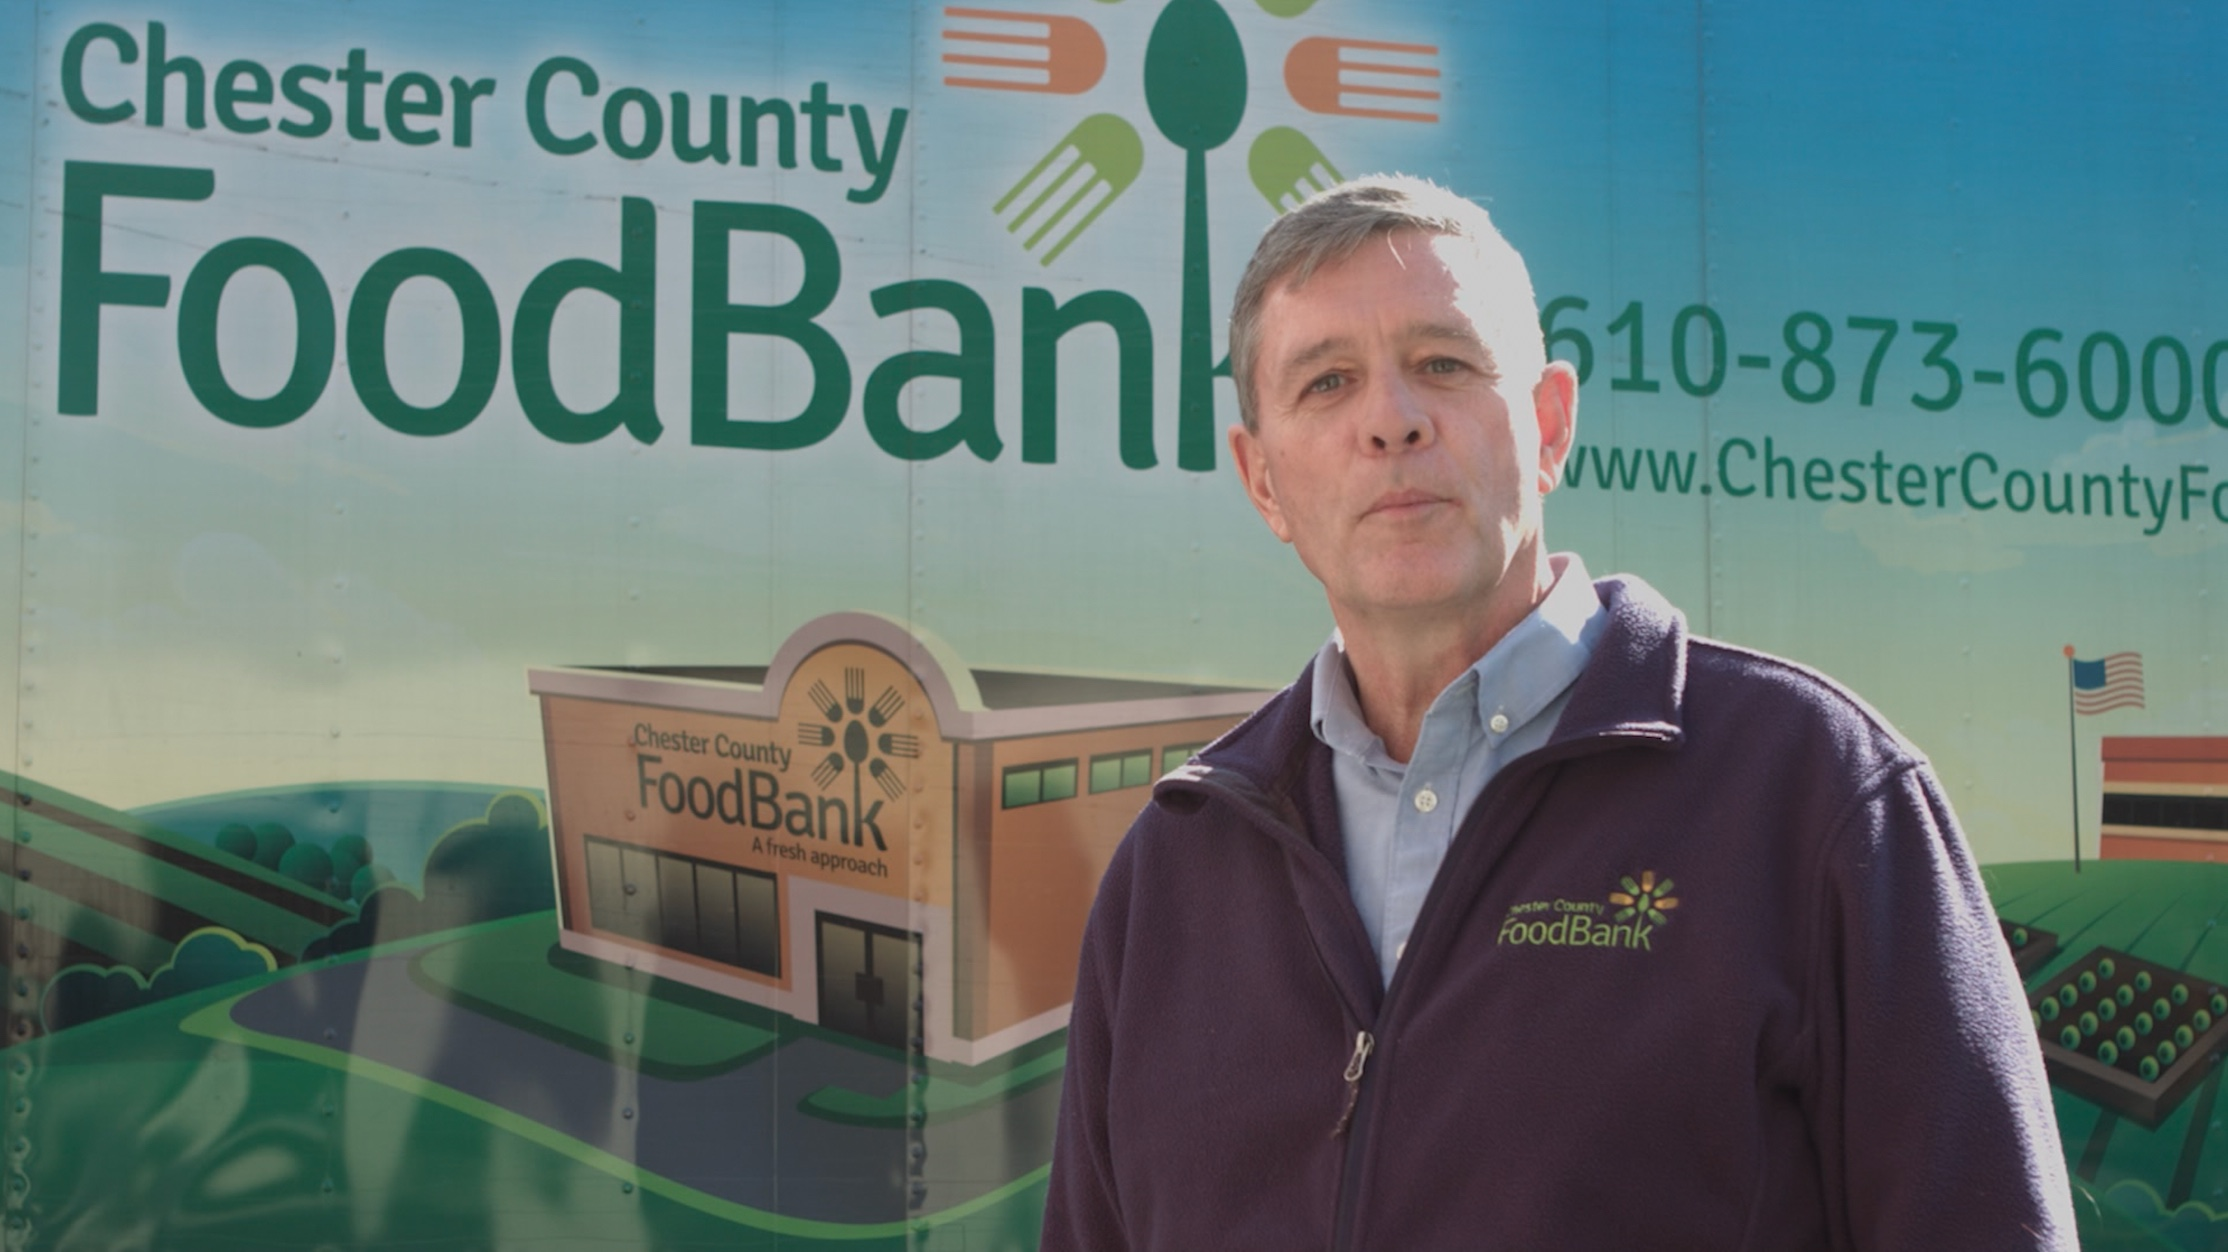 Executive Director of Chester County Food Bank